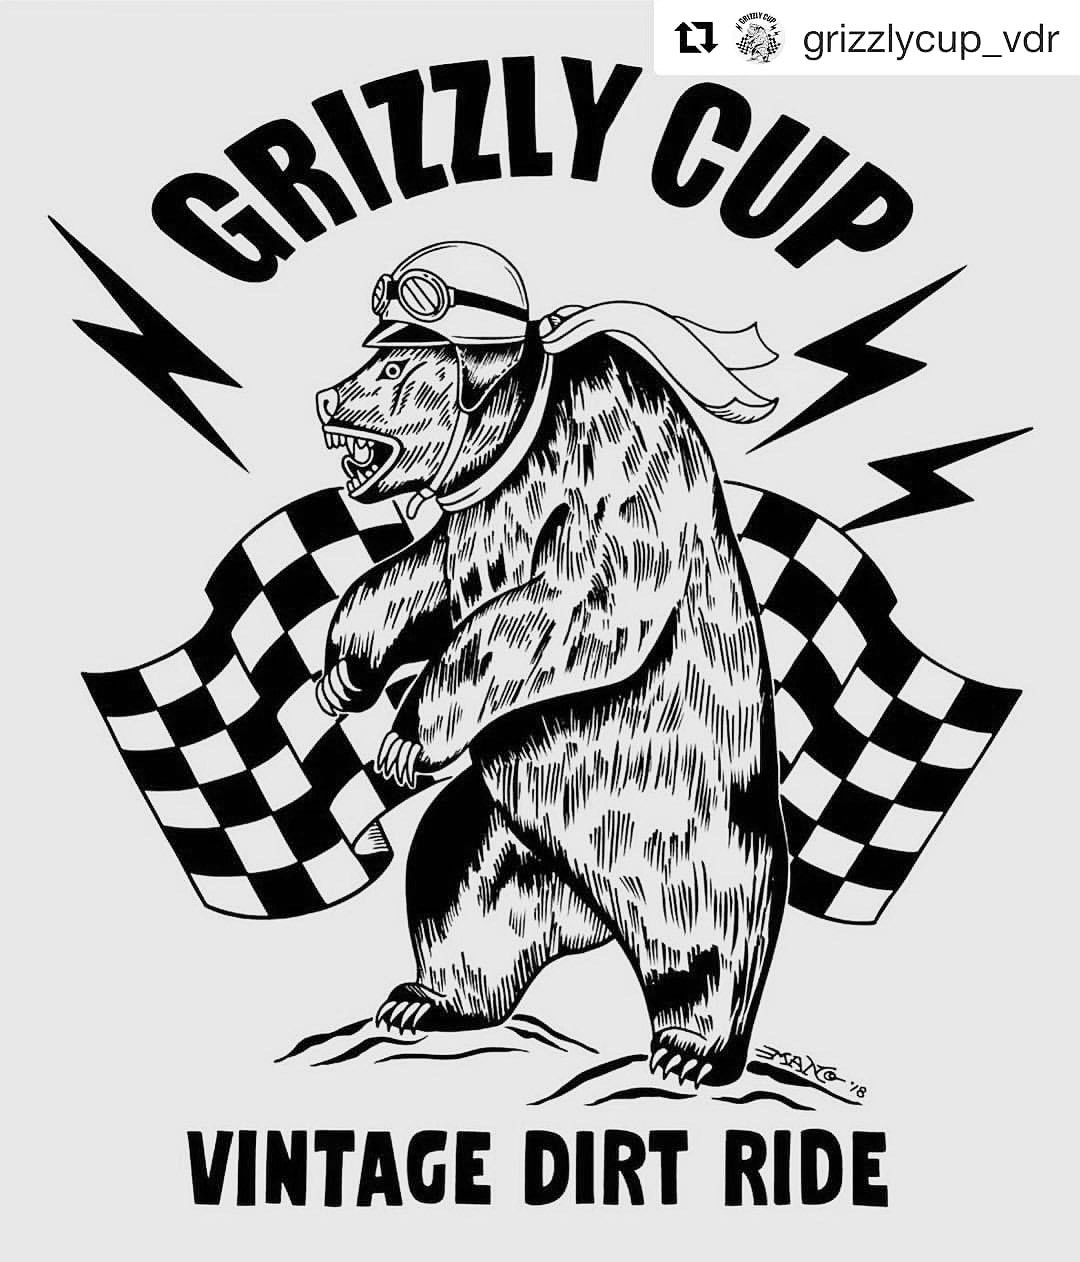 Grizzly Cup 2018 告知_e0364387_10030942.jpg